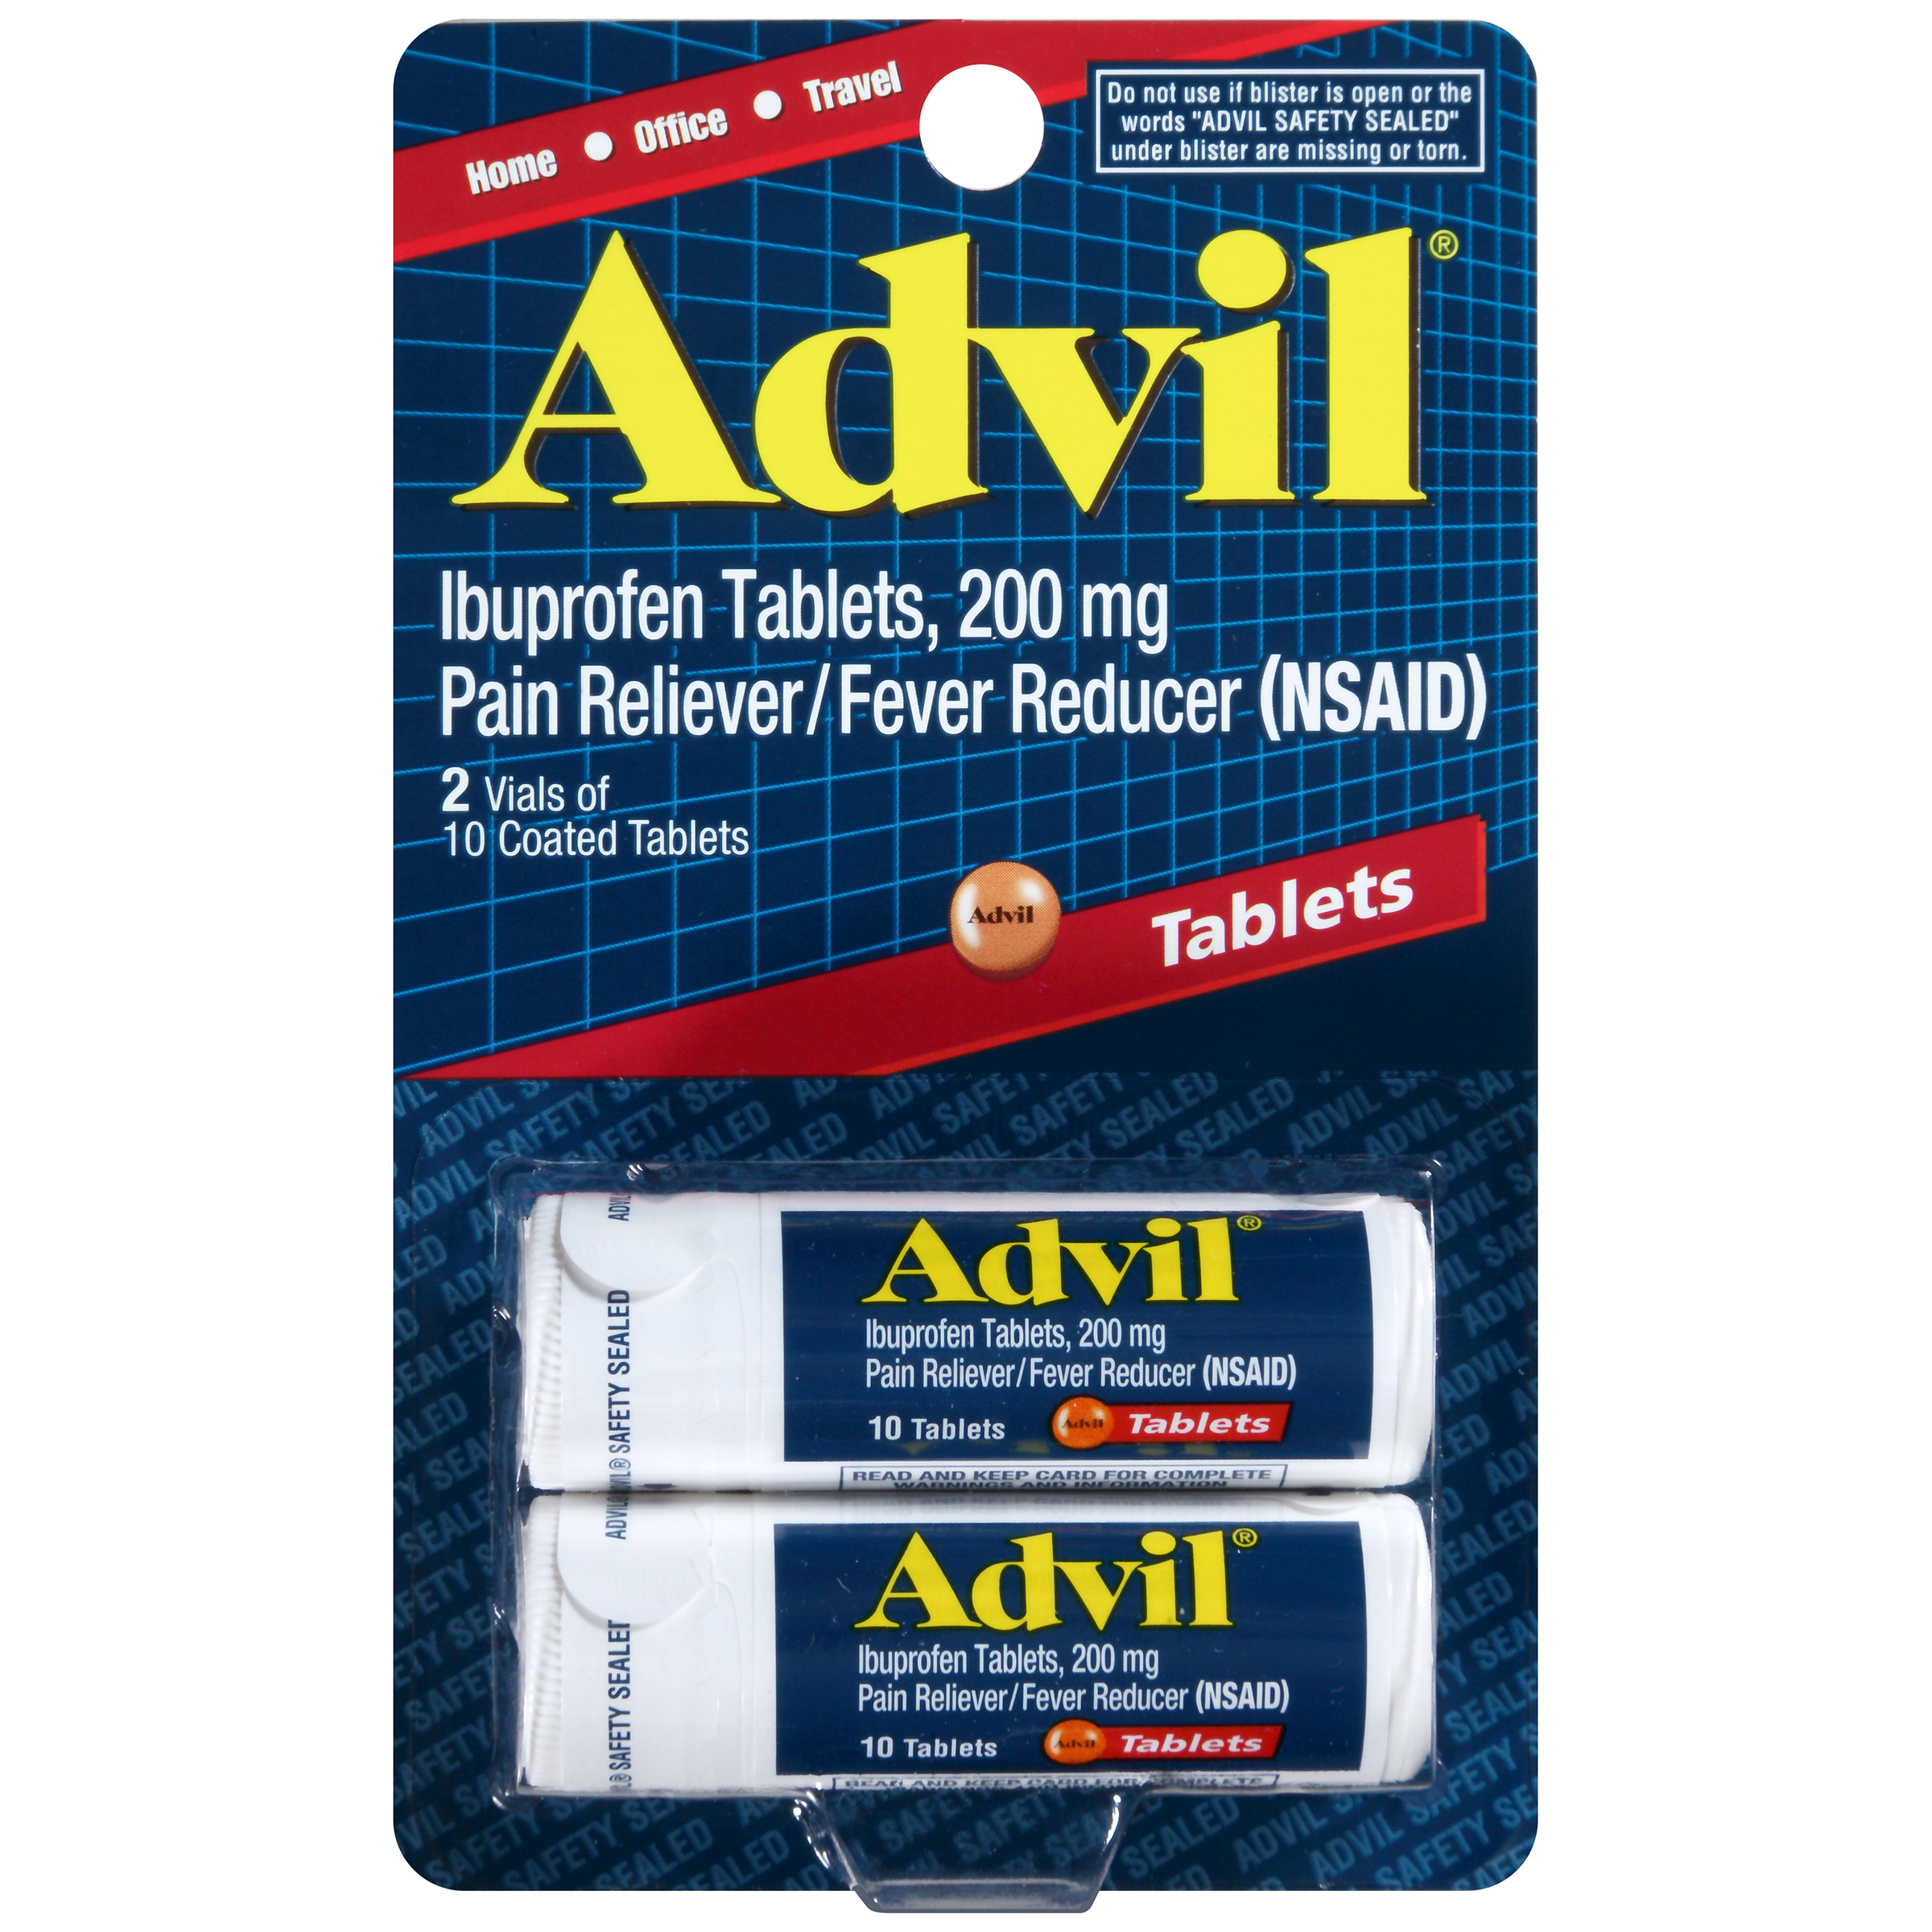 Image of Advil (2 Vials of 10 Tablets) Pain Reliever / Fever Reducer Coated Tablet, 200mg Ibuprofen, Temporary Pain Relief